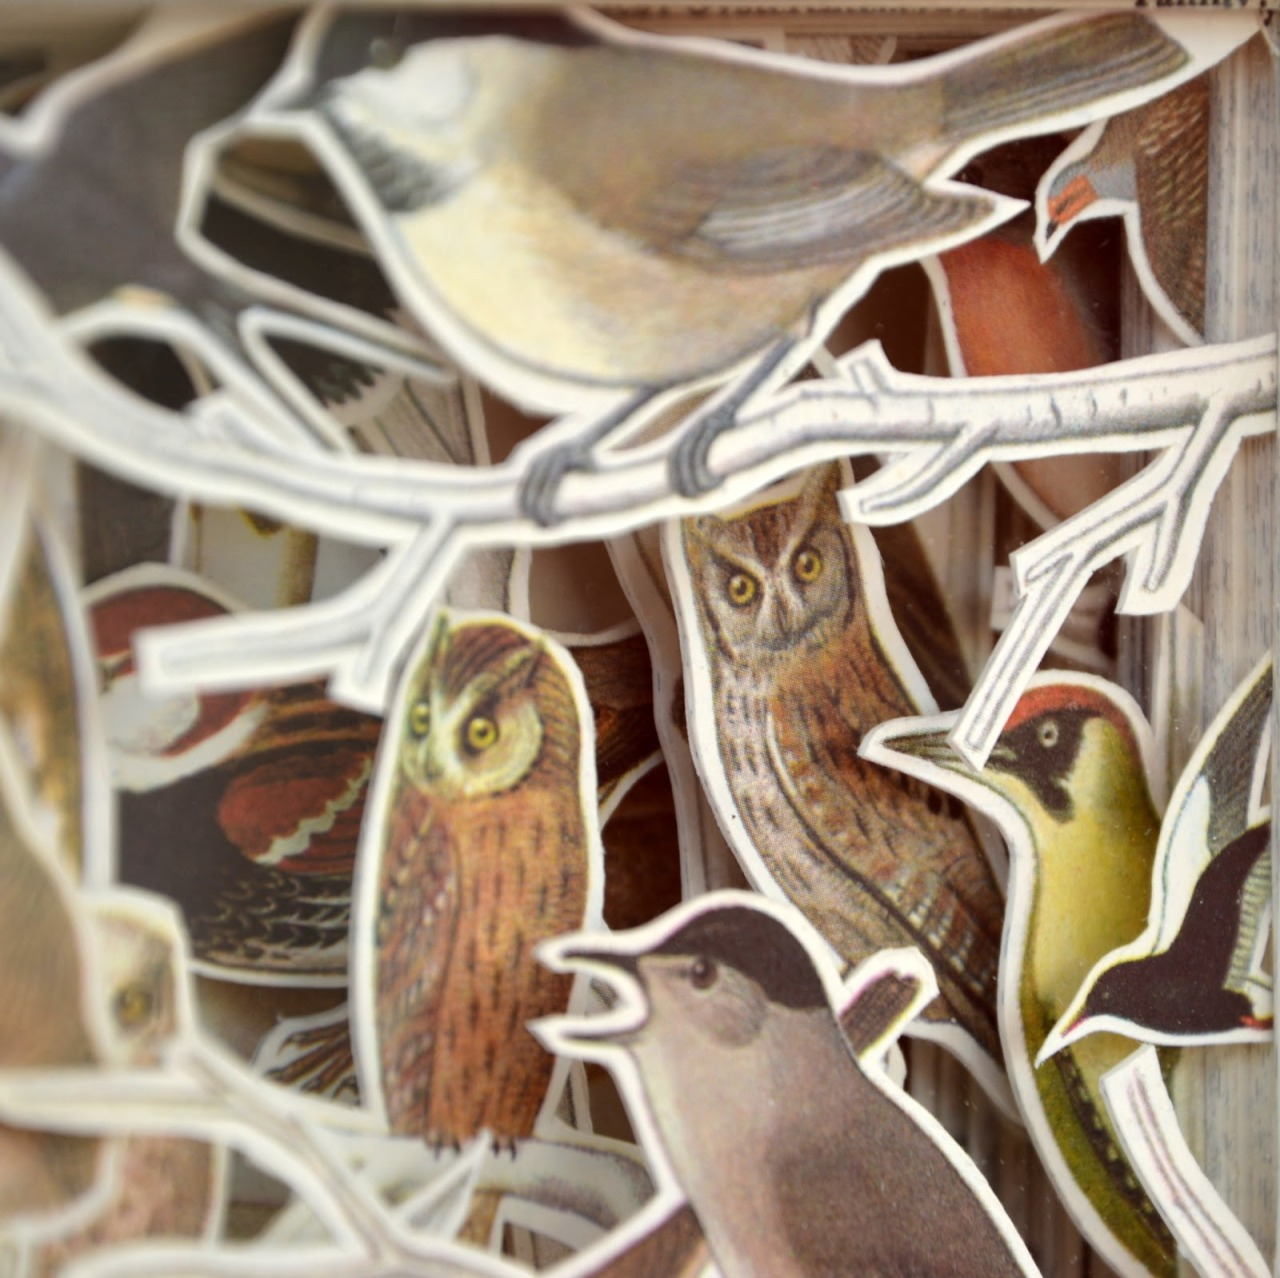 andrew-neil-parr:  'Birds' Book Carving by Julia Strand (Hokey Stokes)